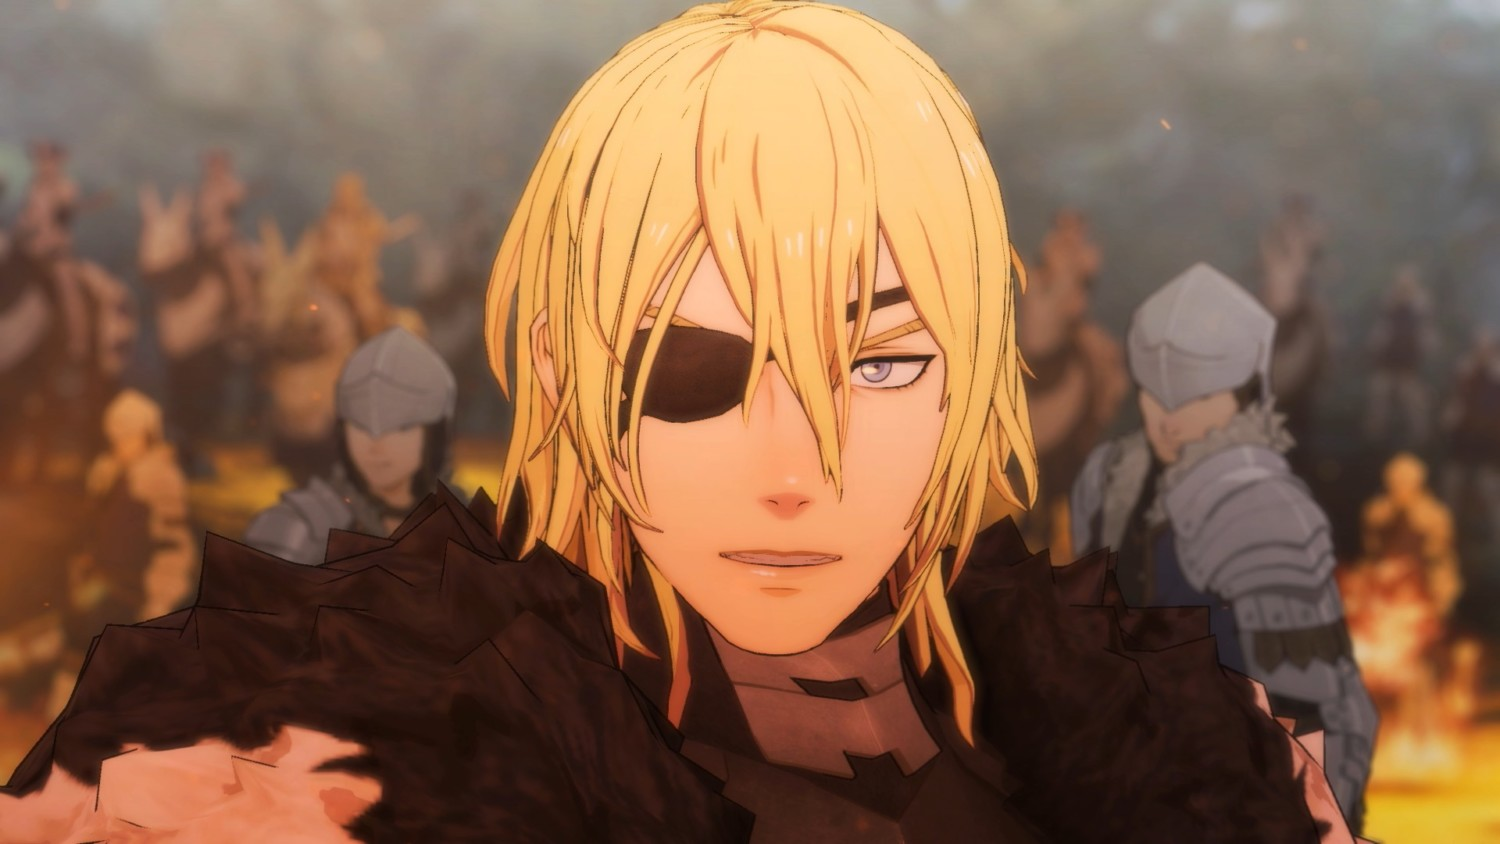 Dimitri looks like he's seen some stuff during the 5 year jump.